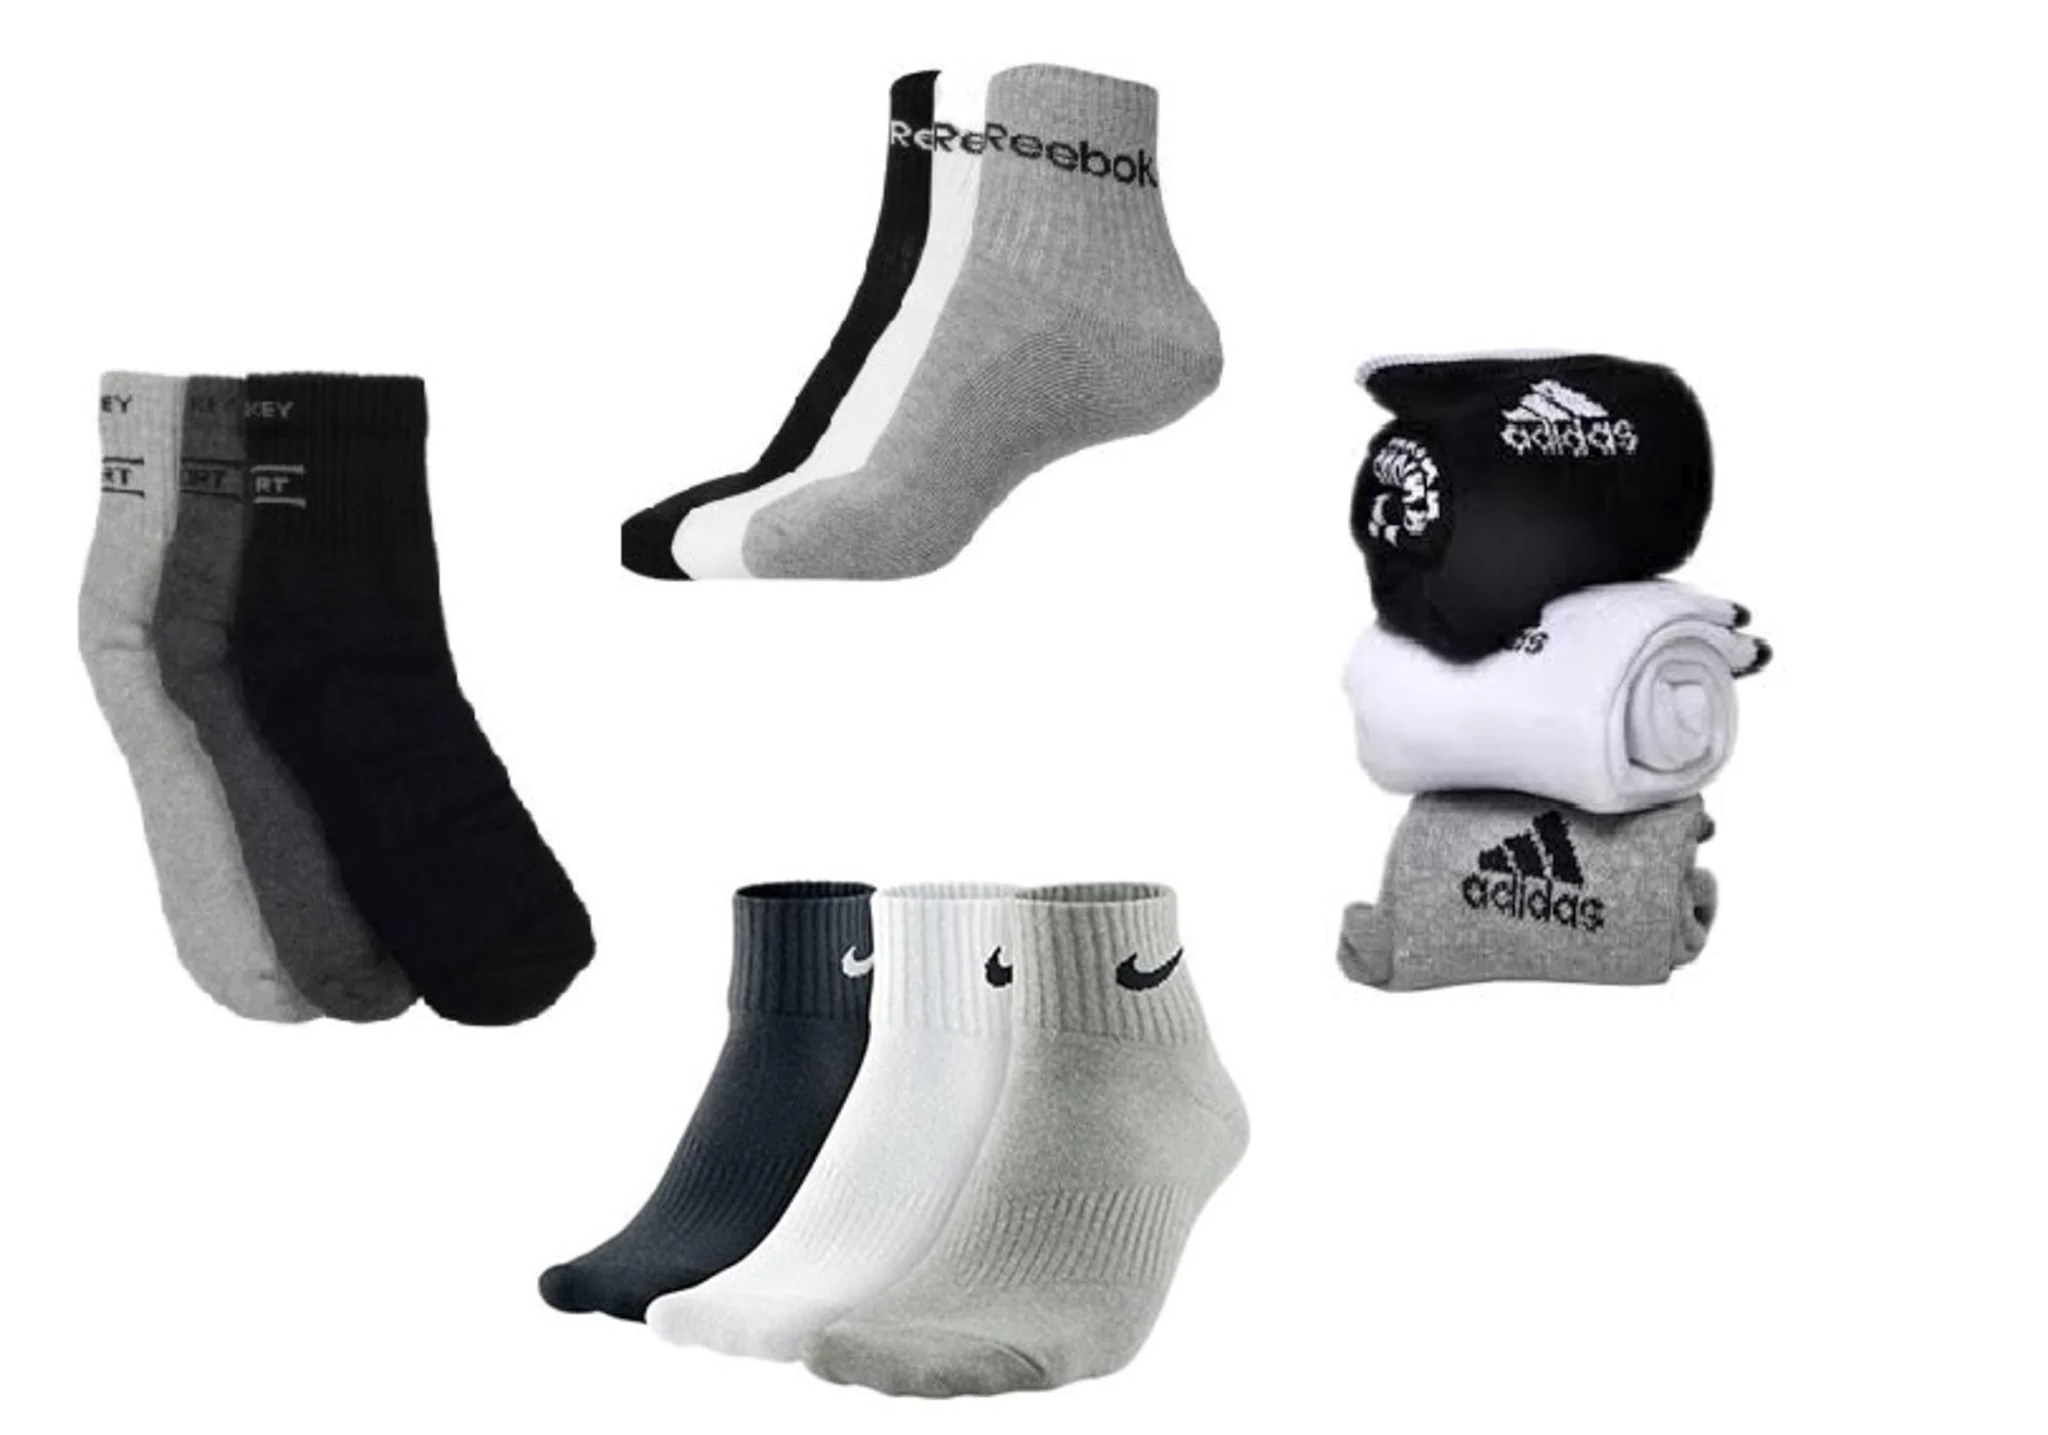 Wholesale Market of Socks in Delhi,Branded Socks Market in India